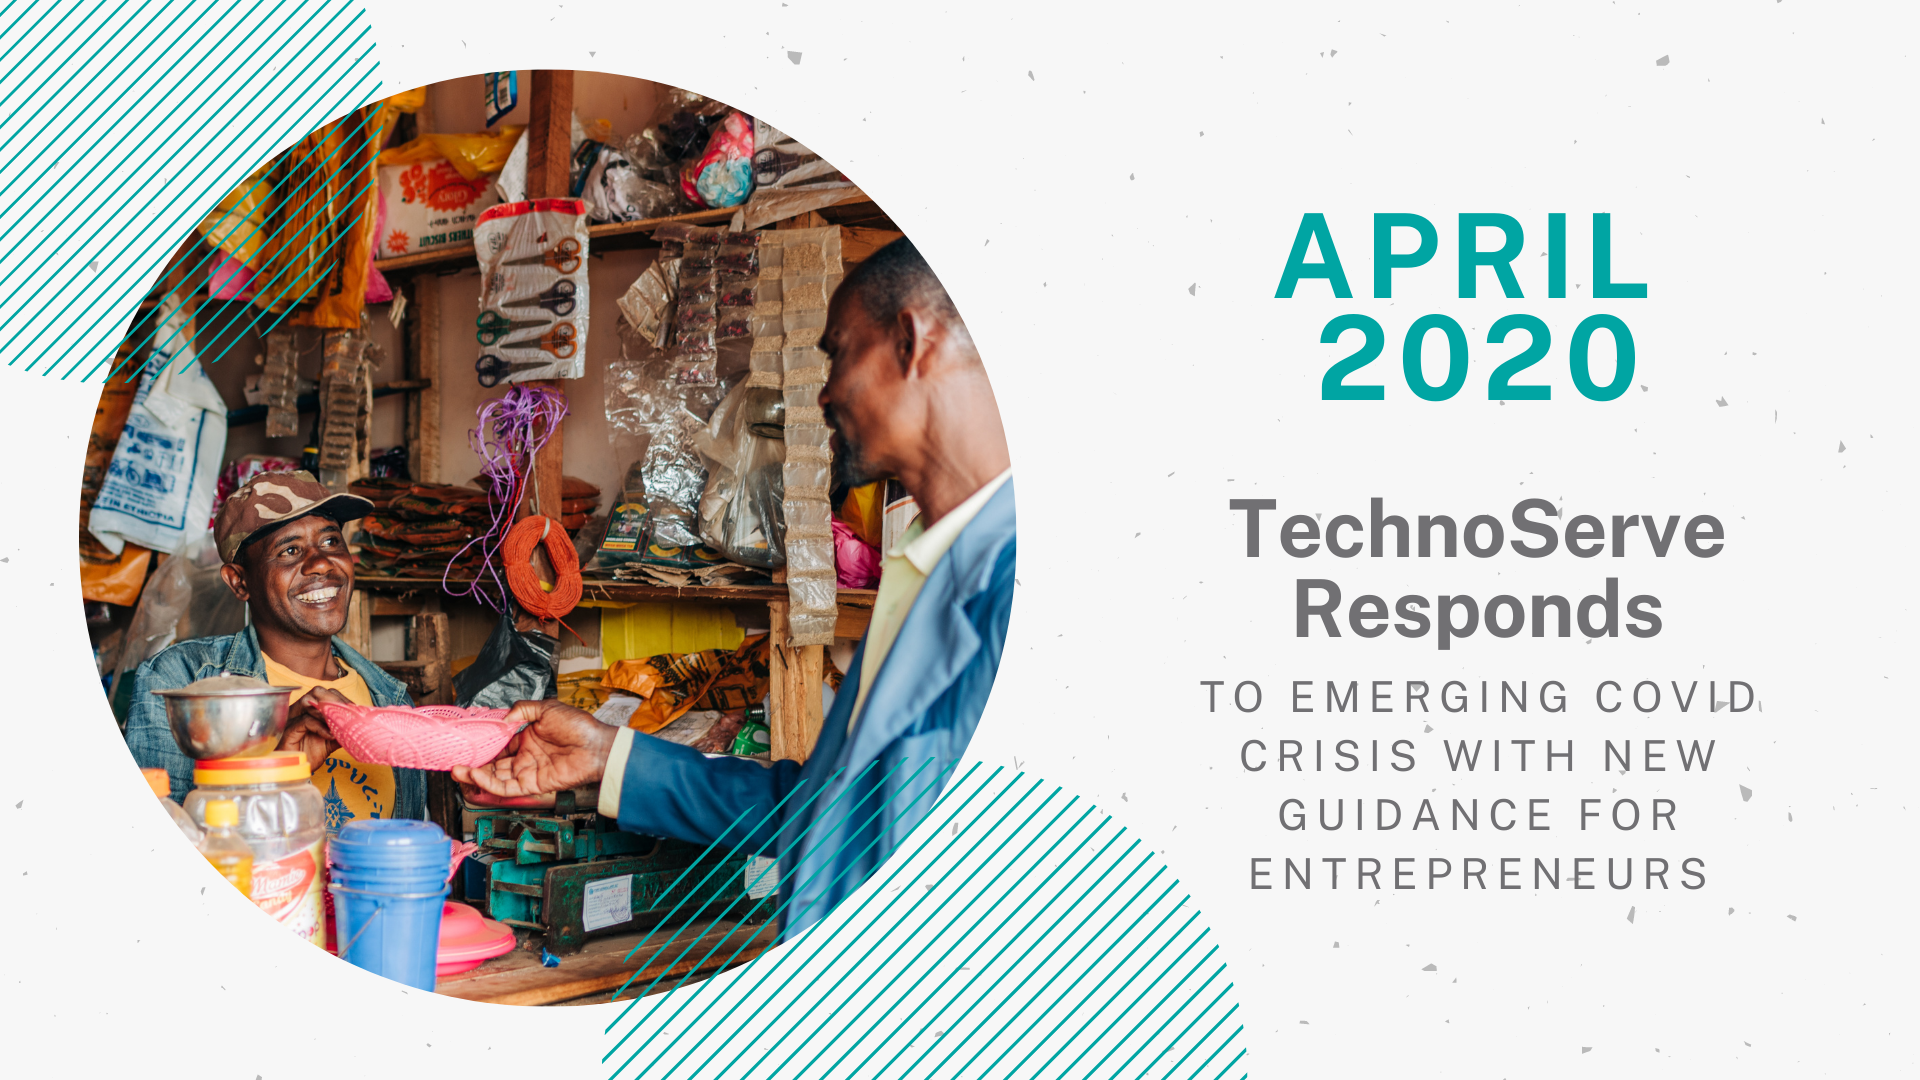 """April"" Graphic for TechnoServe's Year in Review 2020 blog. A circular photo on the left side shows two men smiling as a customer makes a purchase from a small retail shop. A teal header at the top of the right column says ""April 2020,"" above the section title in grey font, ""TechnoServe Responds to emerging COVID Crisis with New Guidance for Entrepreneurs."""